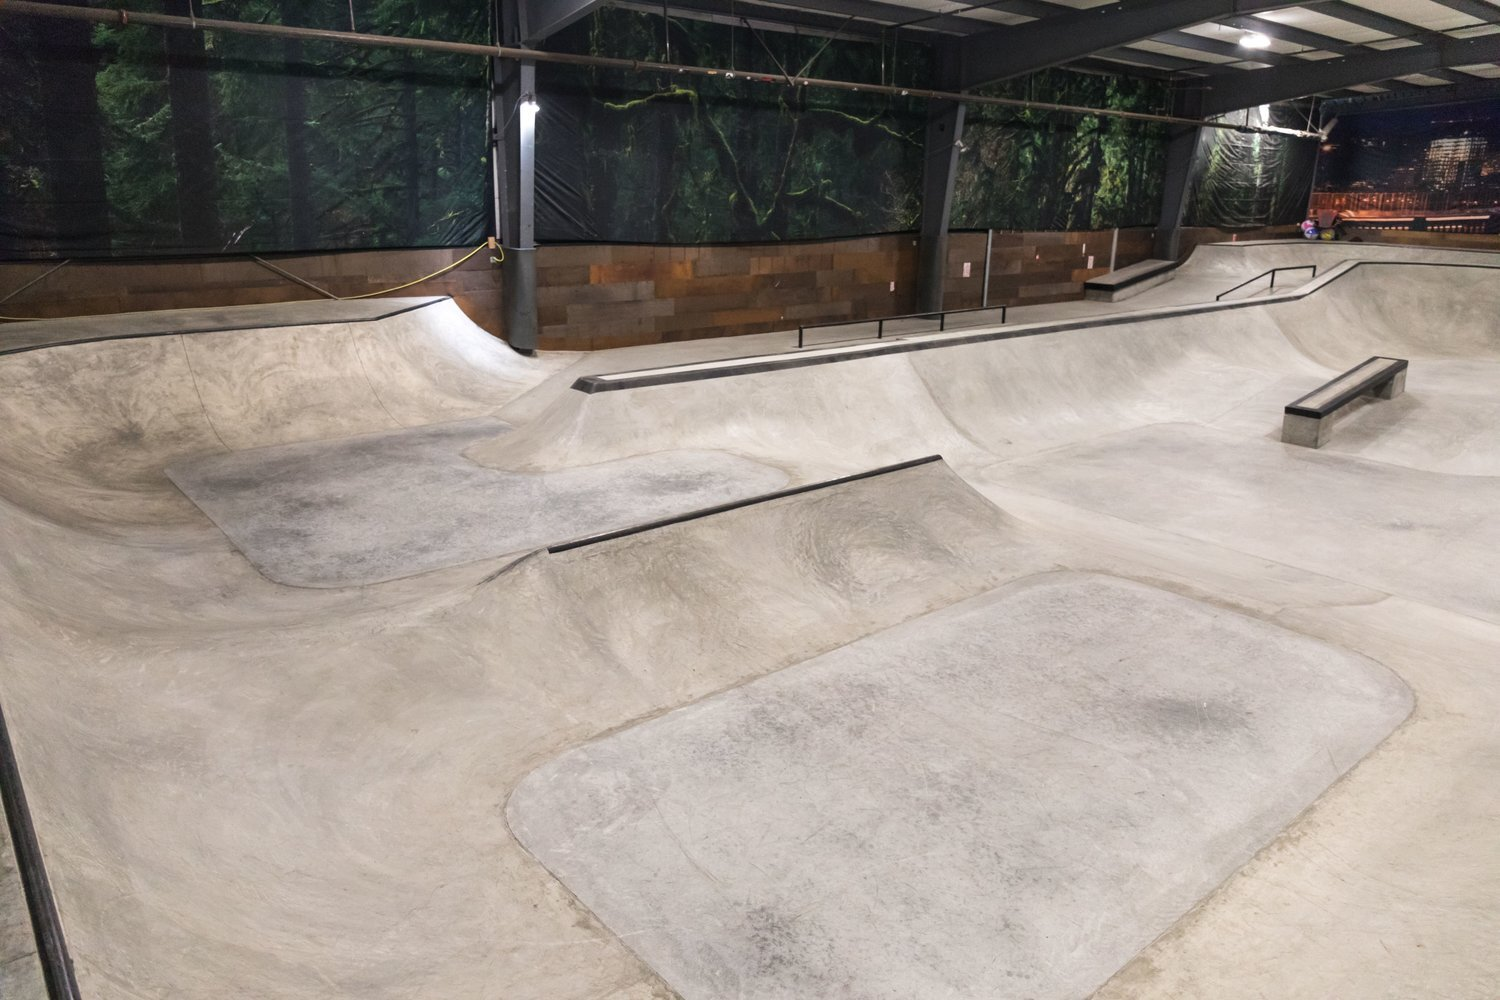 B.O.B - We are excited to announce that our indoor skatepark has been completely re vamped! The old wooden ramps have been replaced with concrete, there are Two Olympic size flybed trampolines, a super tramp, and an airbag, which are perfect for dialing in aerial maneuvers off snow. You won't want to miss out on what the new building has to offer!